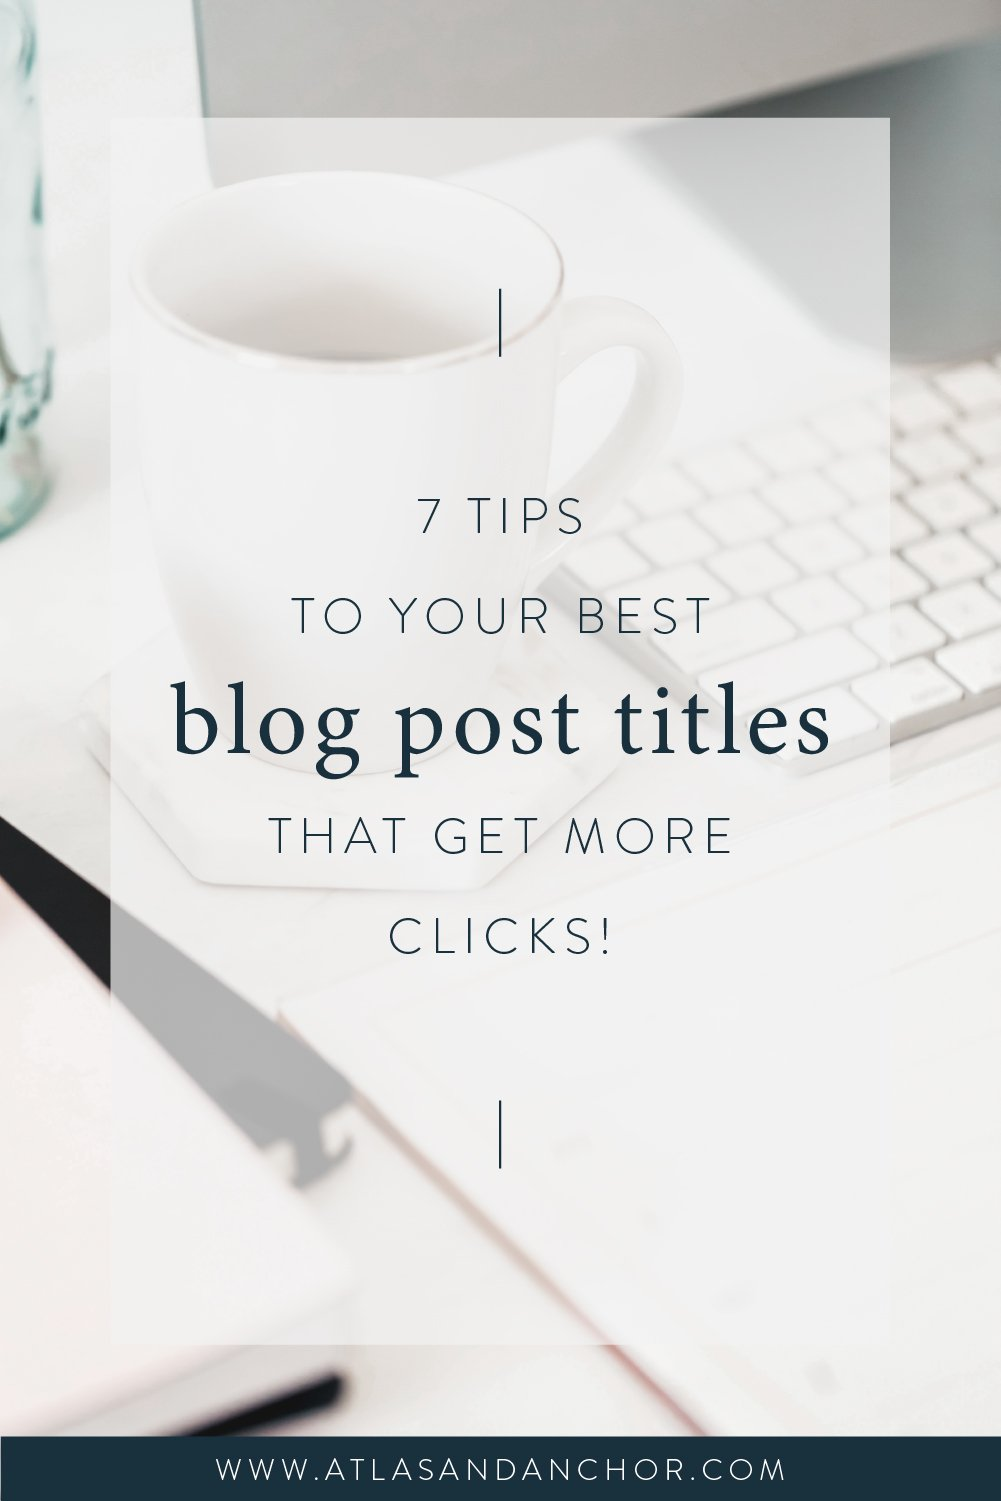 7 Tips To Your Best Blog Post Titles